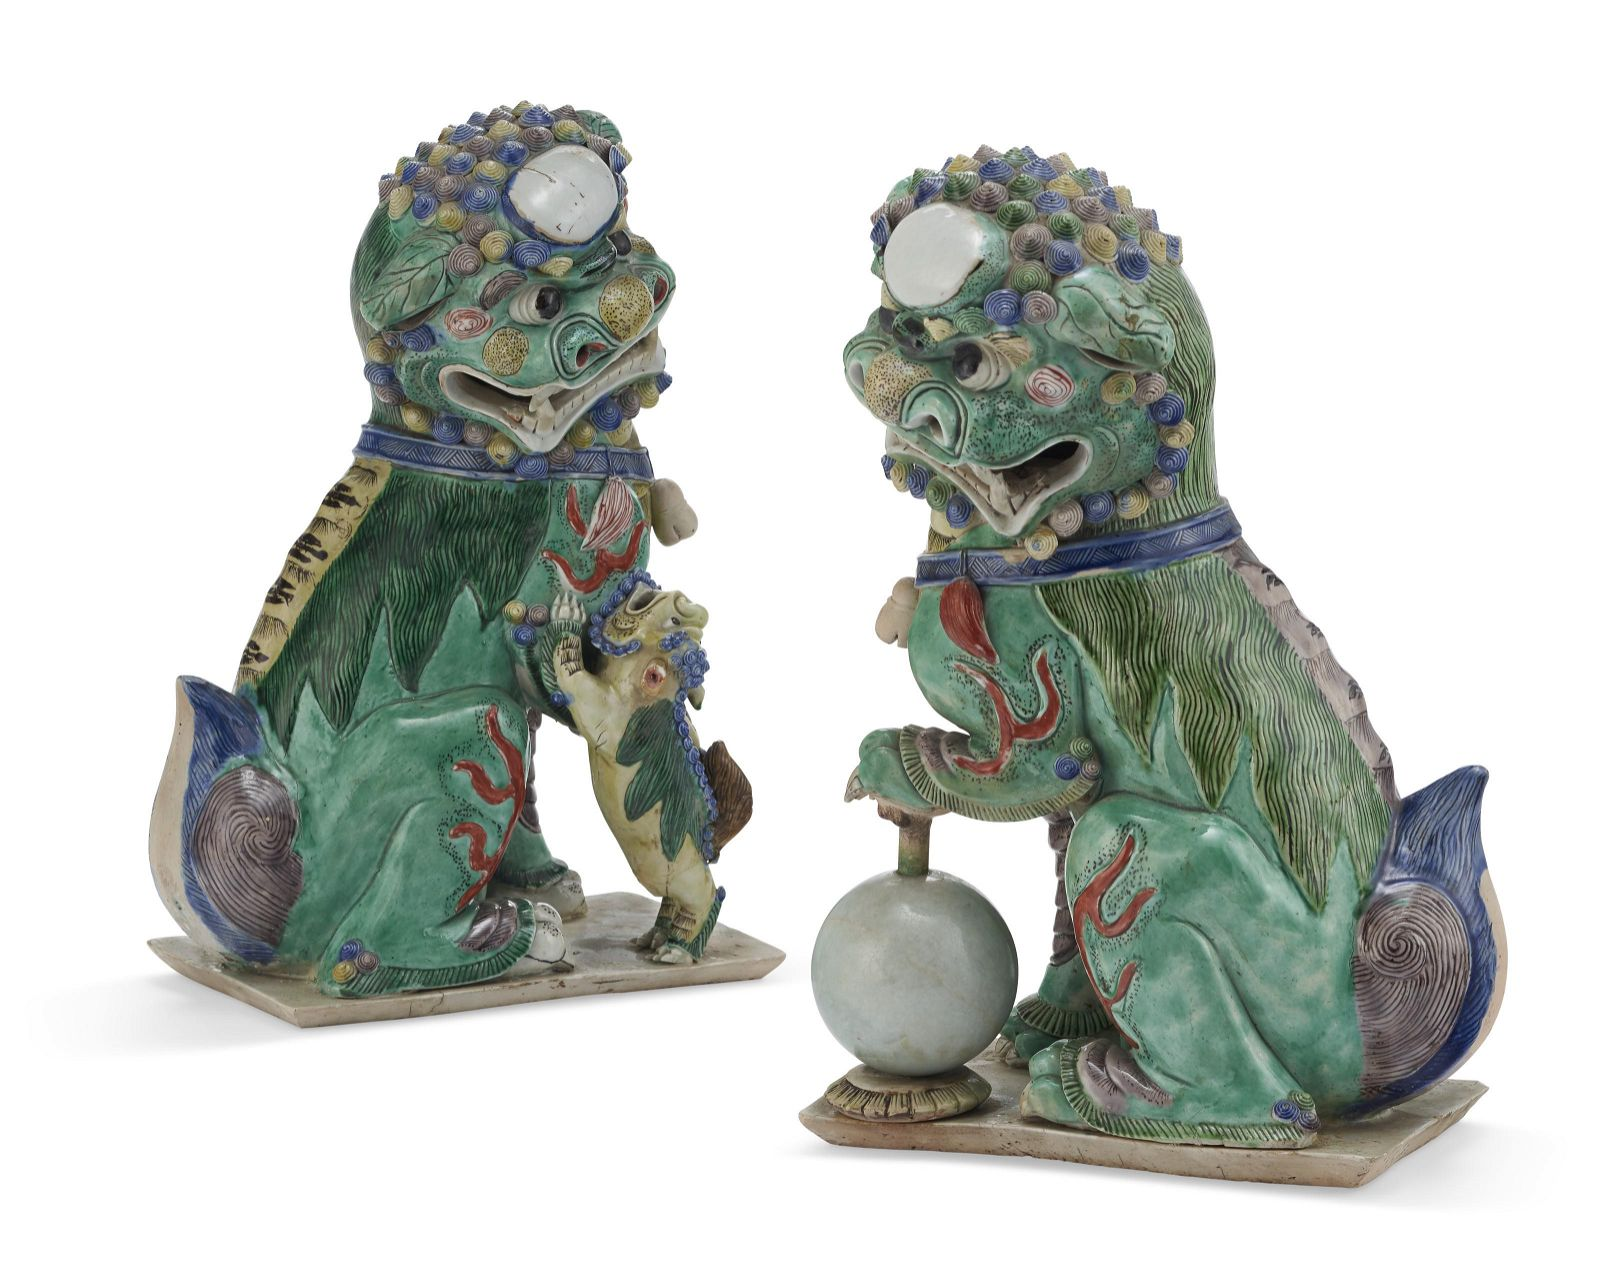 A PAIR OF CHINESE FAMILLE VERTE BISCUIT PORCELAIN